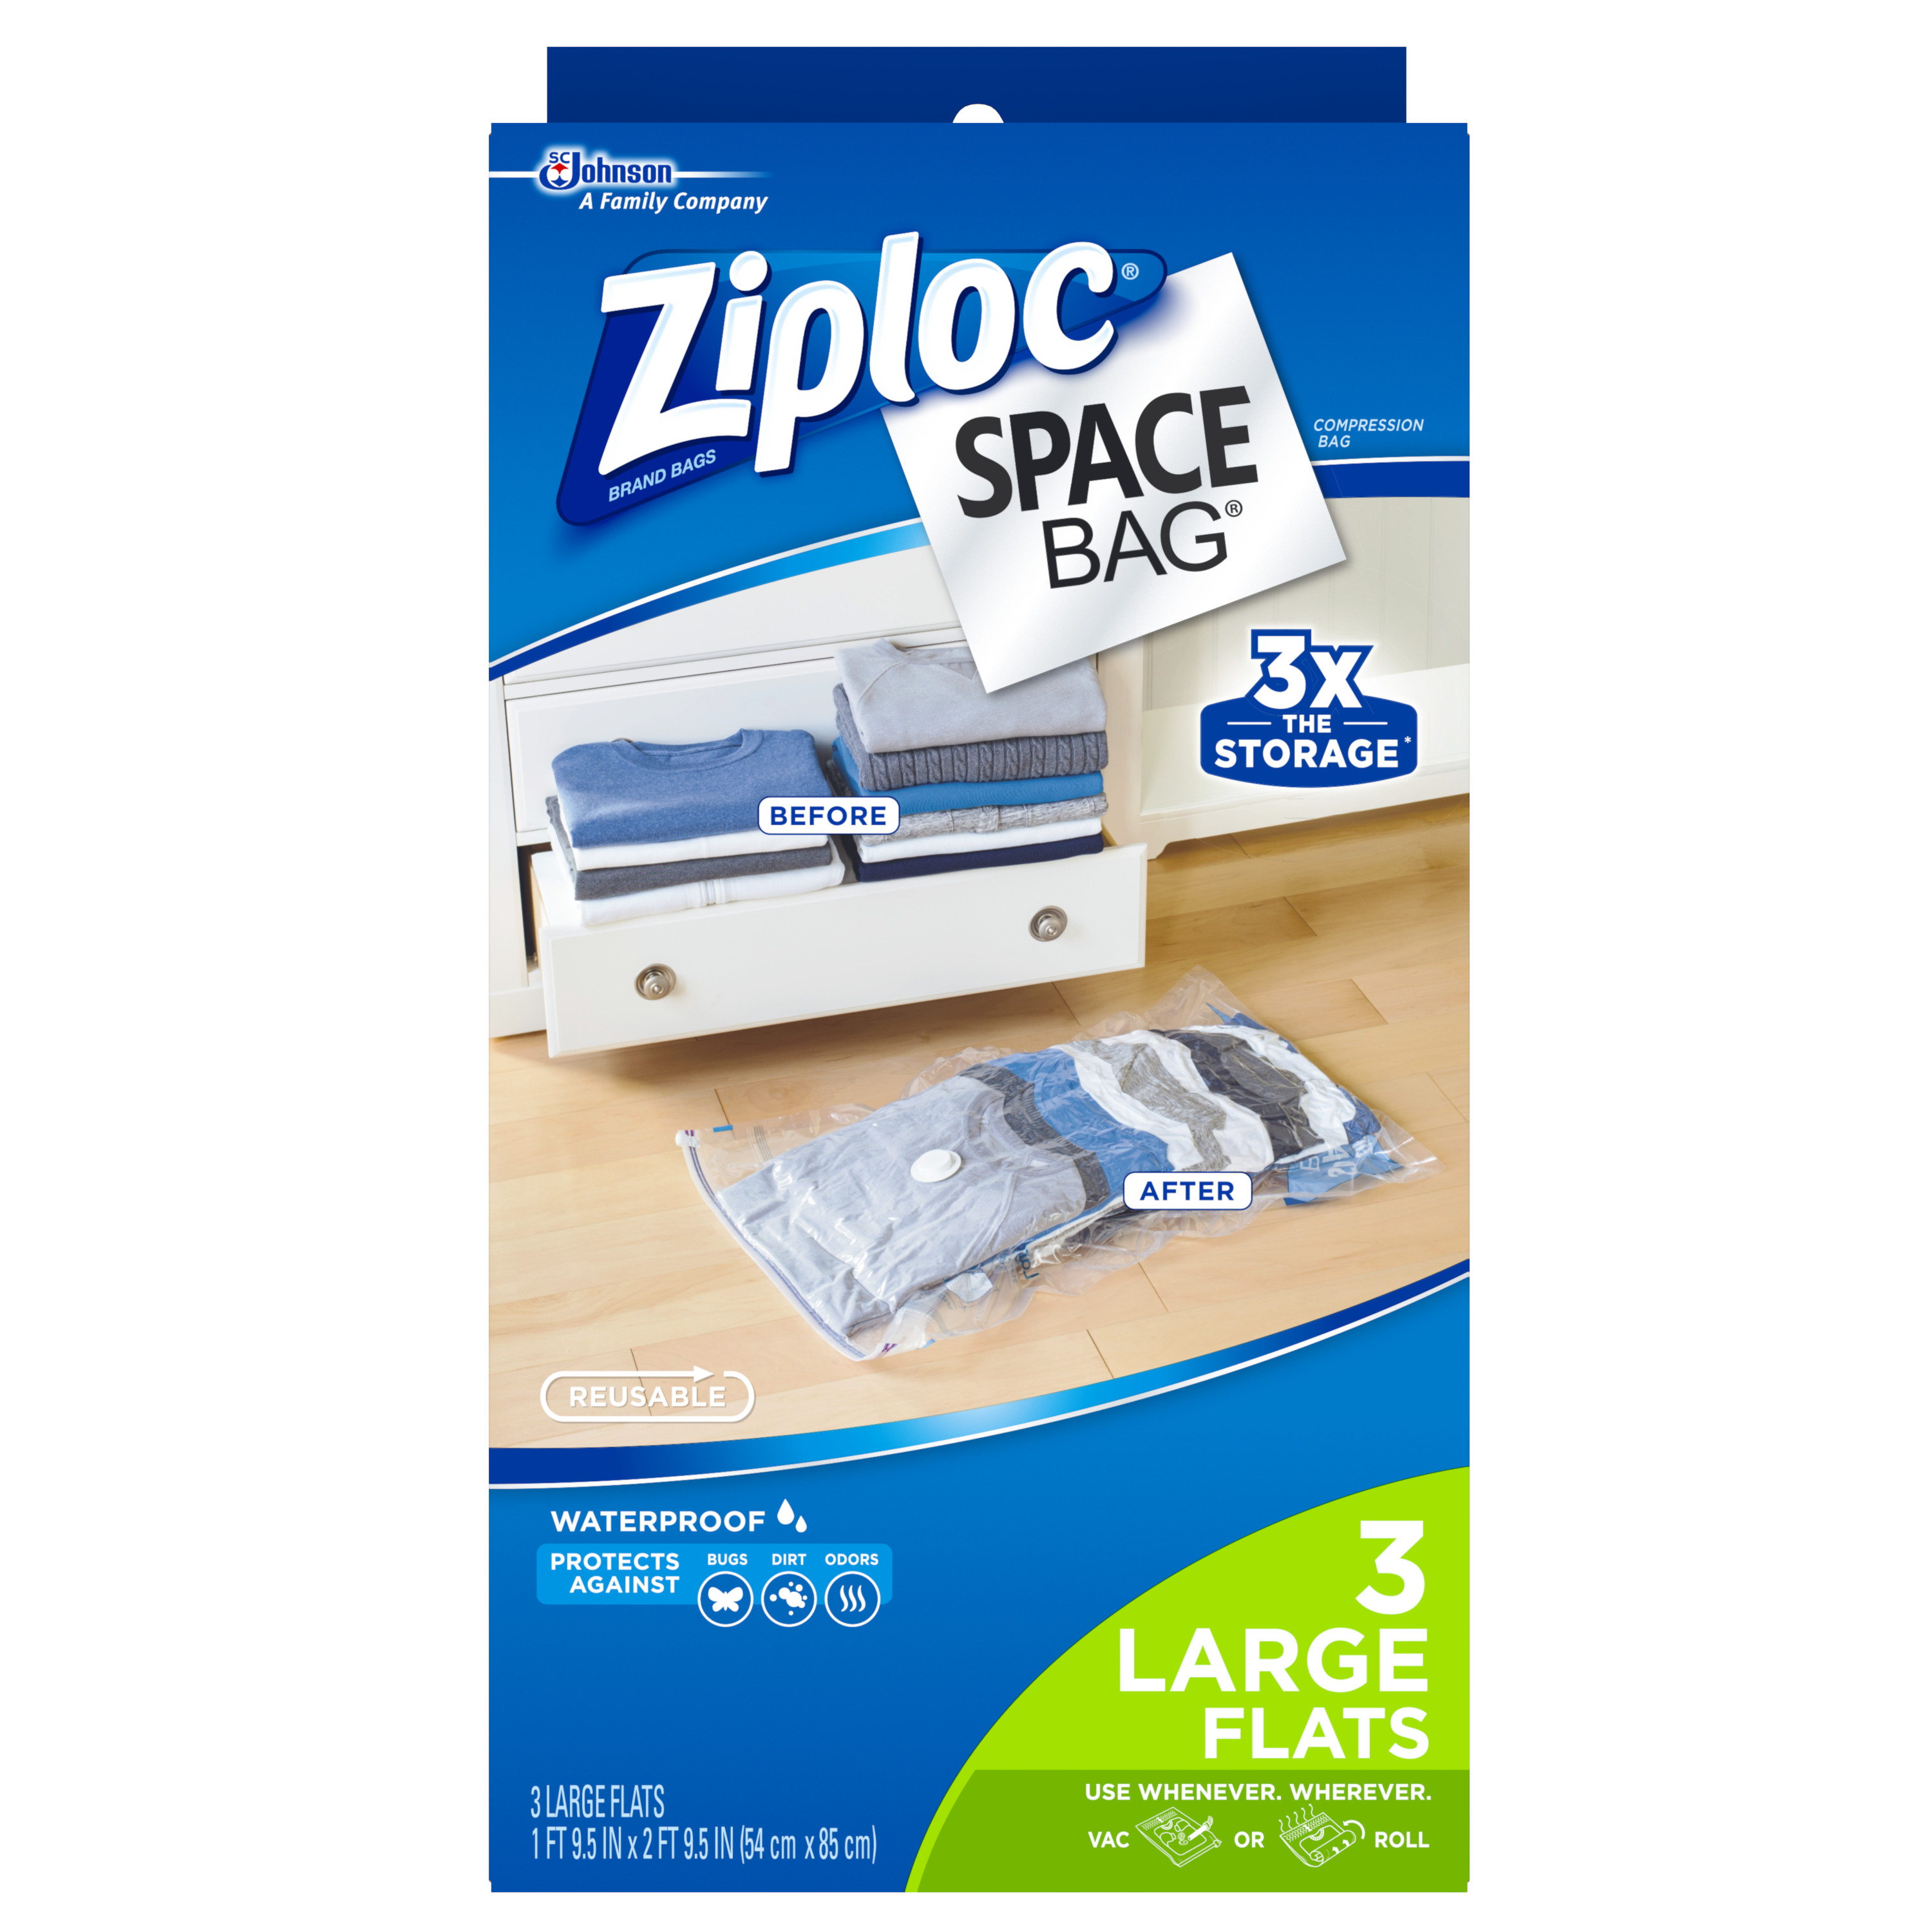 Ziploc Space Bag 3 count Large Dual-Use Flat Bag